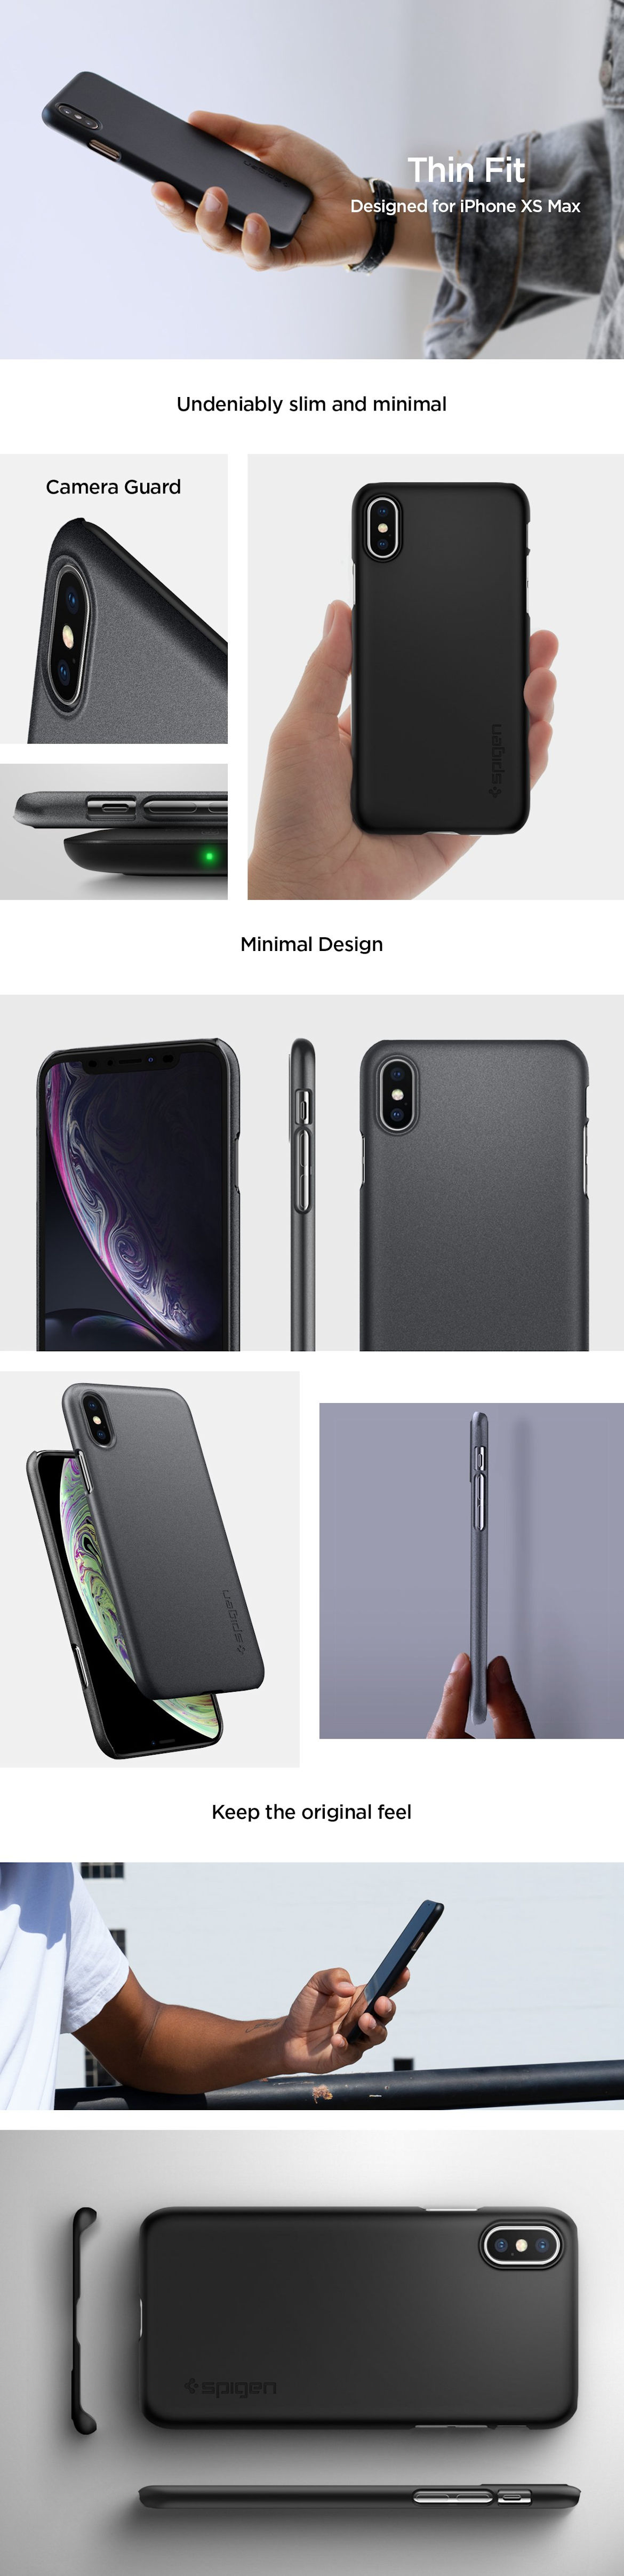 Spigen Iphone Xs Max Case Thin Fit Matte Black Galaxy S8 Carcasa Gohub